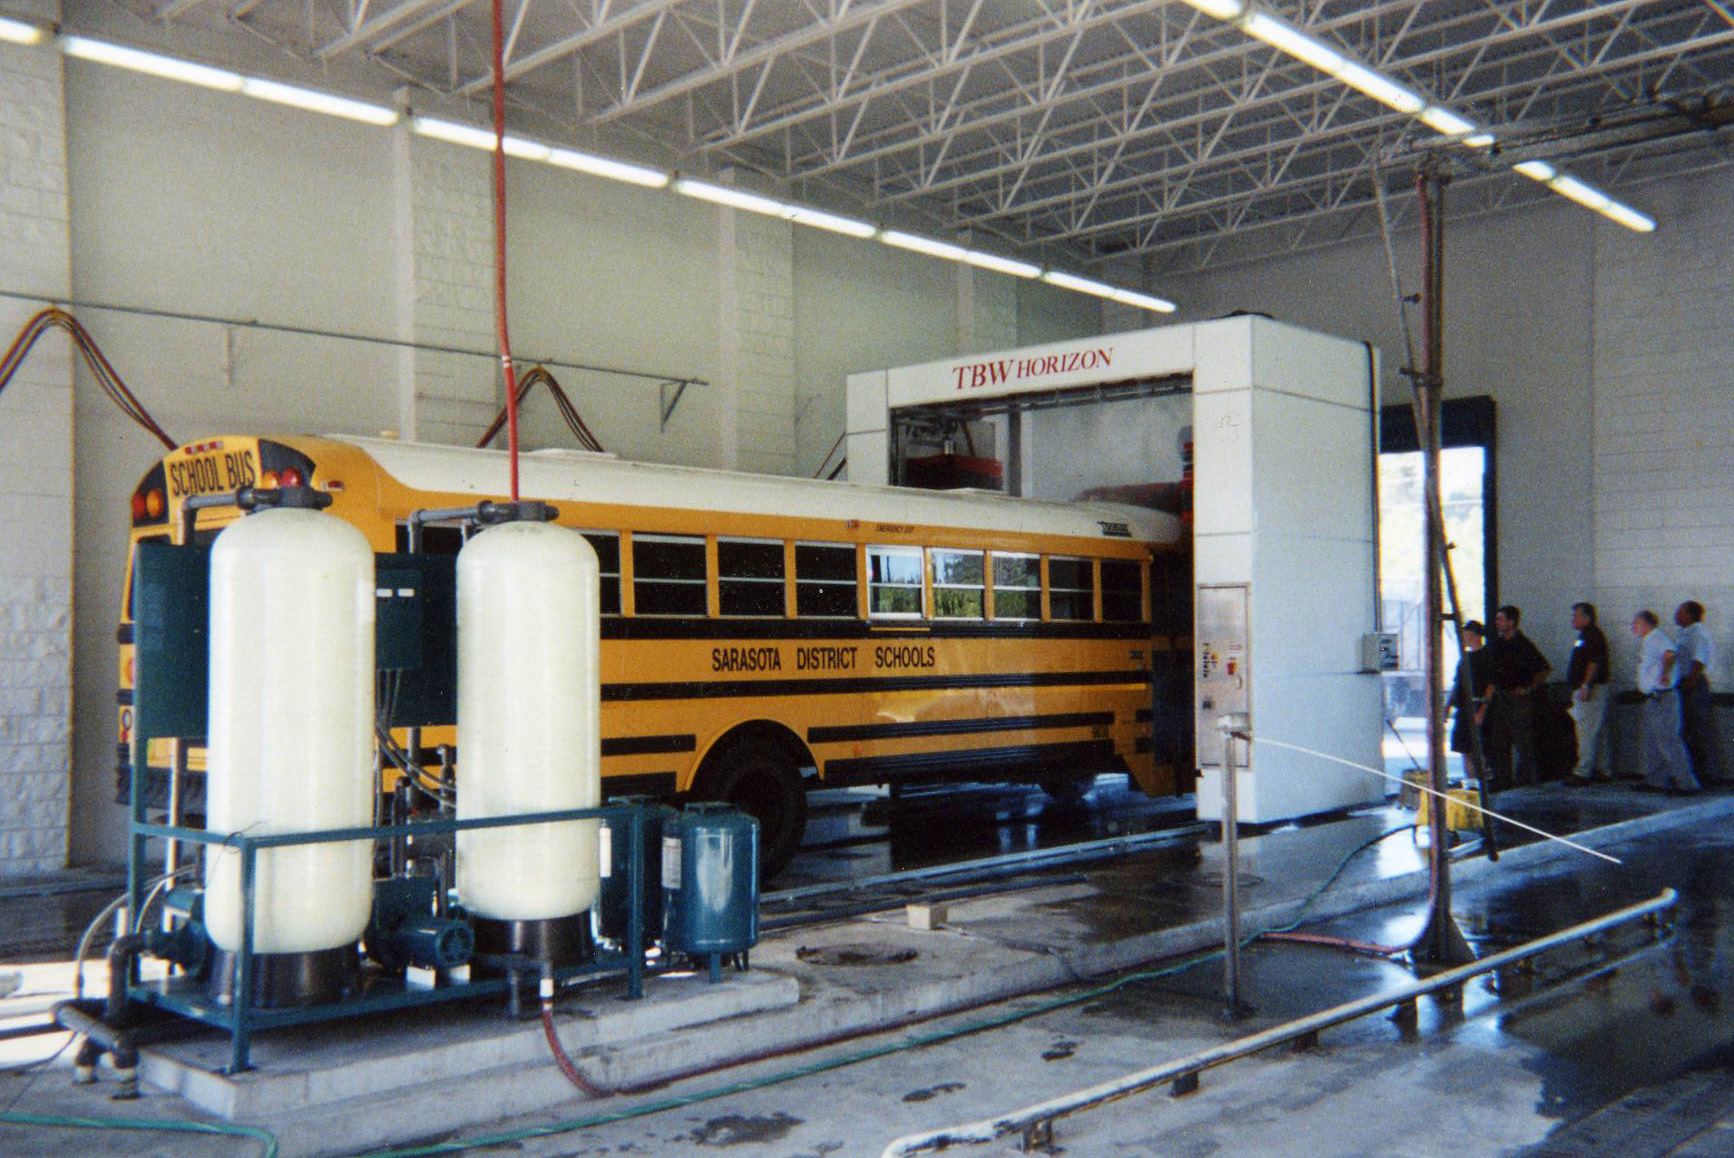 Waste Water Design Inc - bus wash